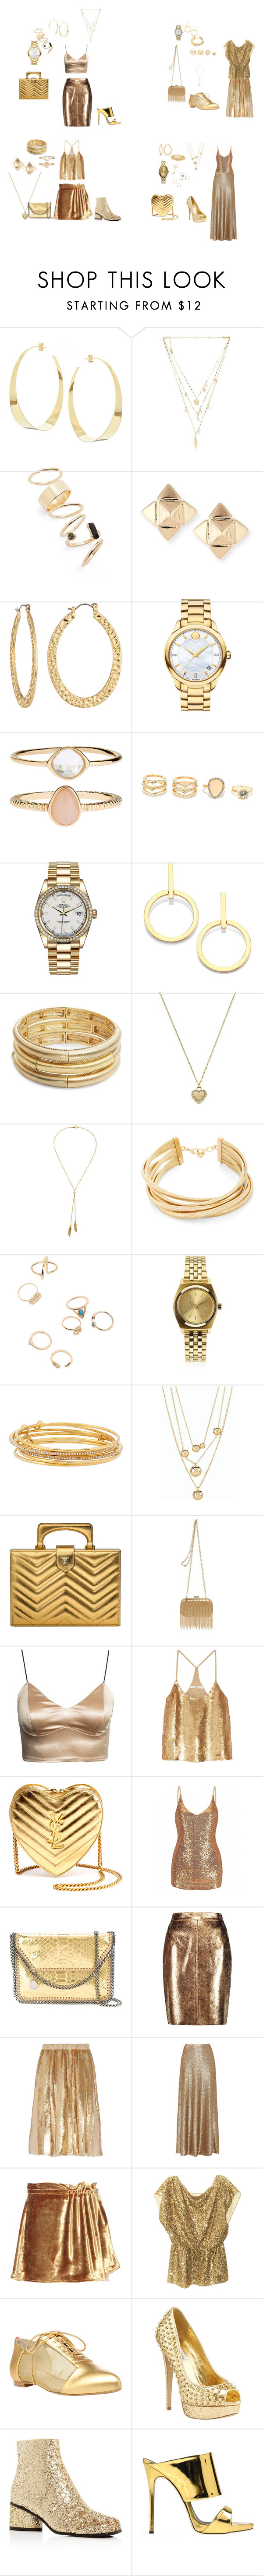 """""""Gold gold gold and more gold"""" by tori-holbrook-th ❤ liked on Polyvore featuring Lana, Ettika, BP., Valentino, Fragments, Movado, Accessorize, LULUS, Rolex and Vita Fede"""